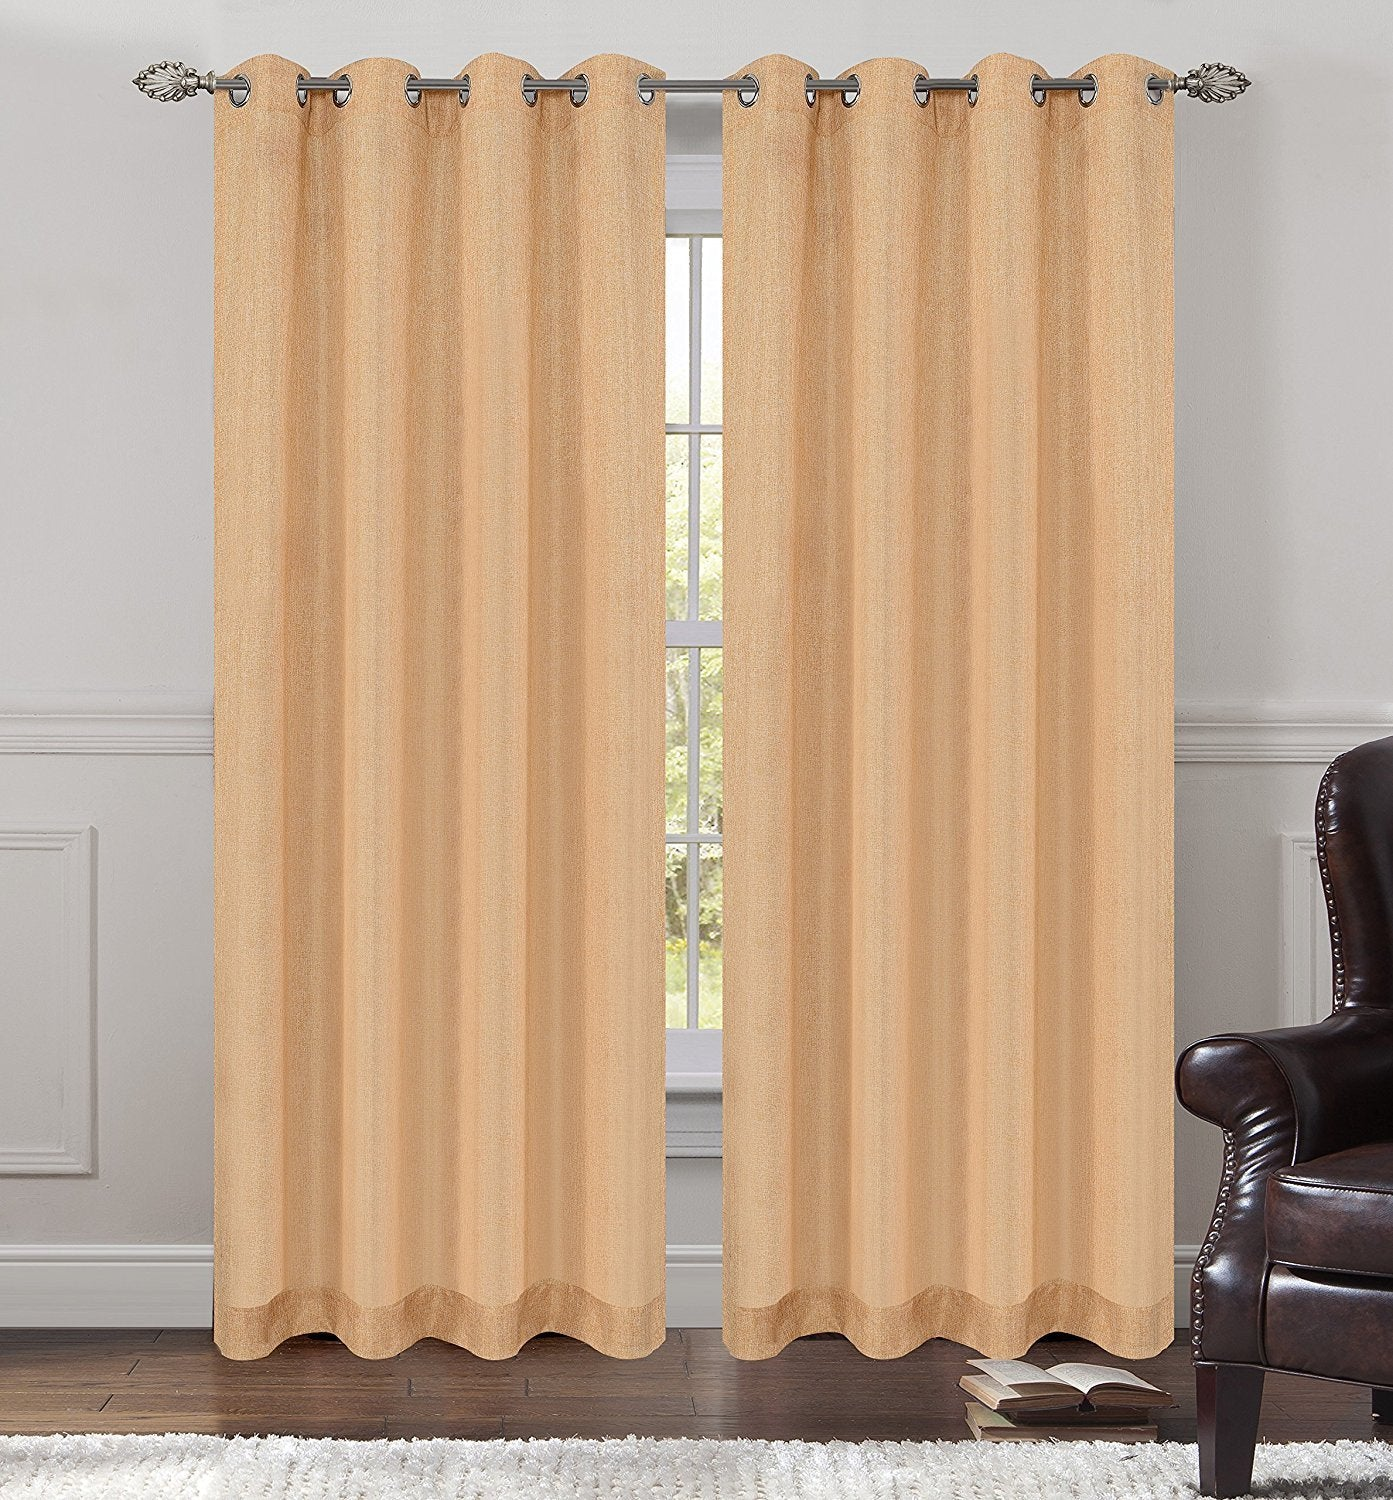 p white x pocket in l drapes panel sheer curtains rod curtain tergaline w panels